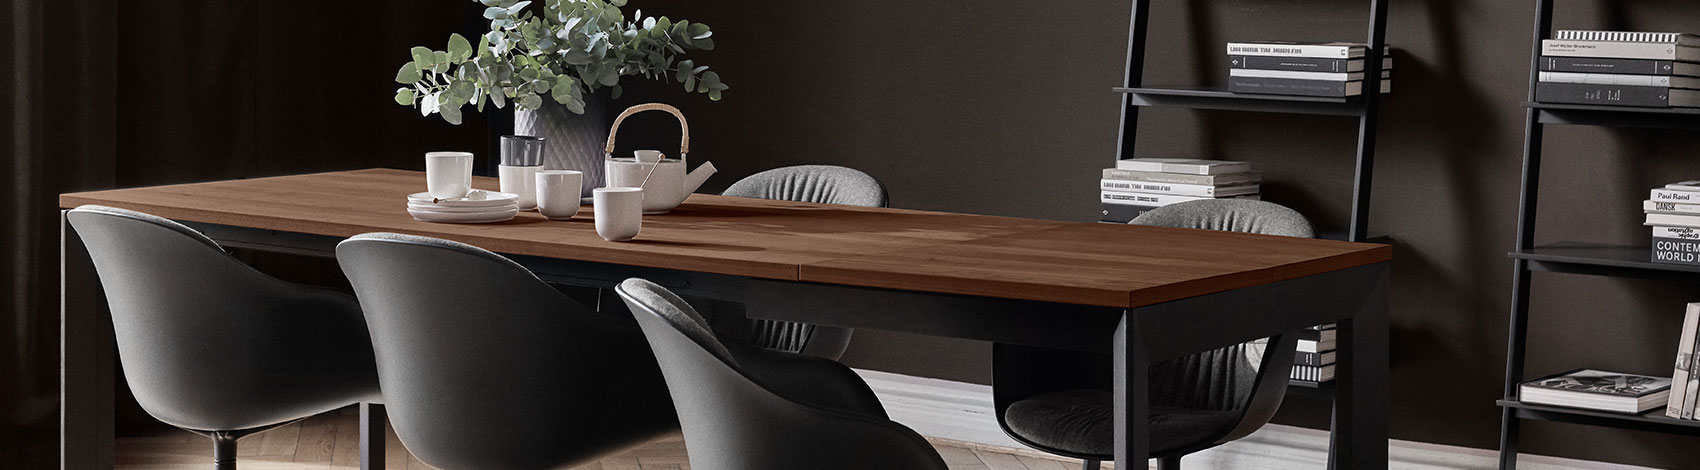 Torino table with walnut veneer tabletop and black legs with matching black chairs and black wall systems